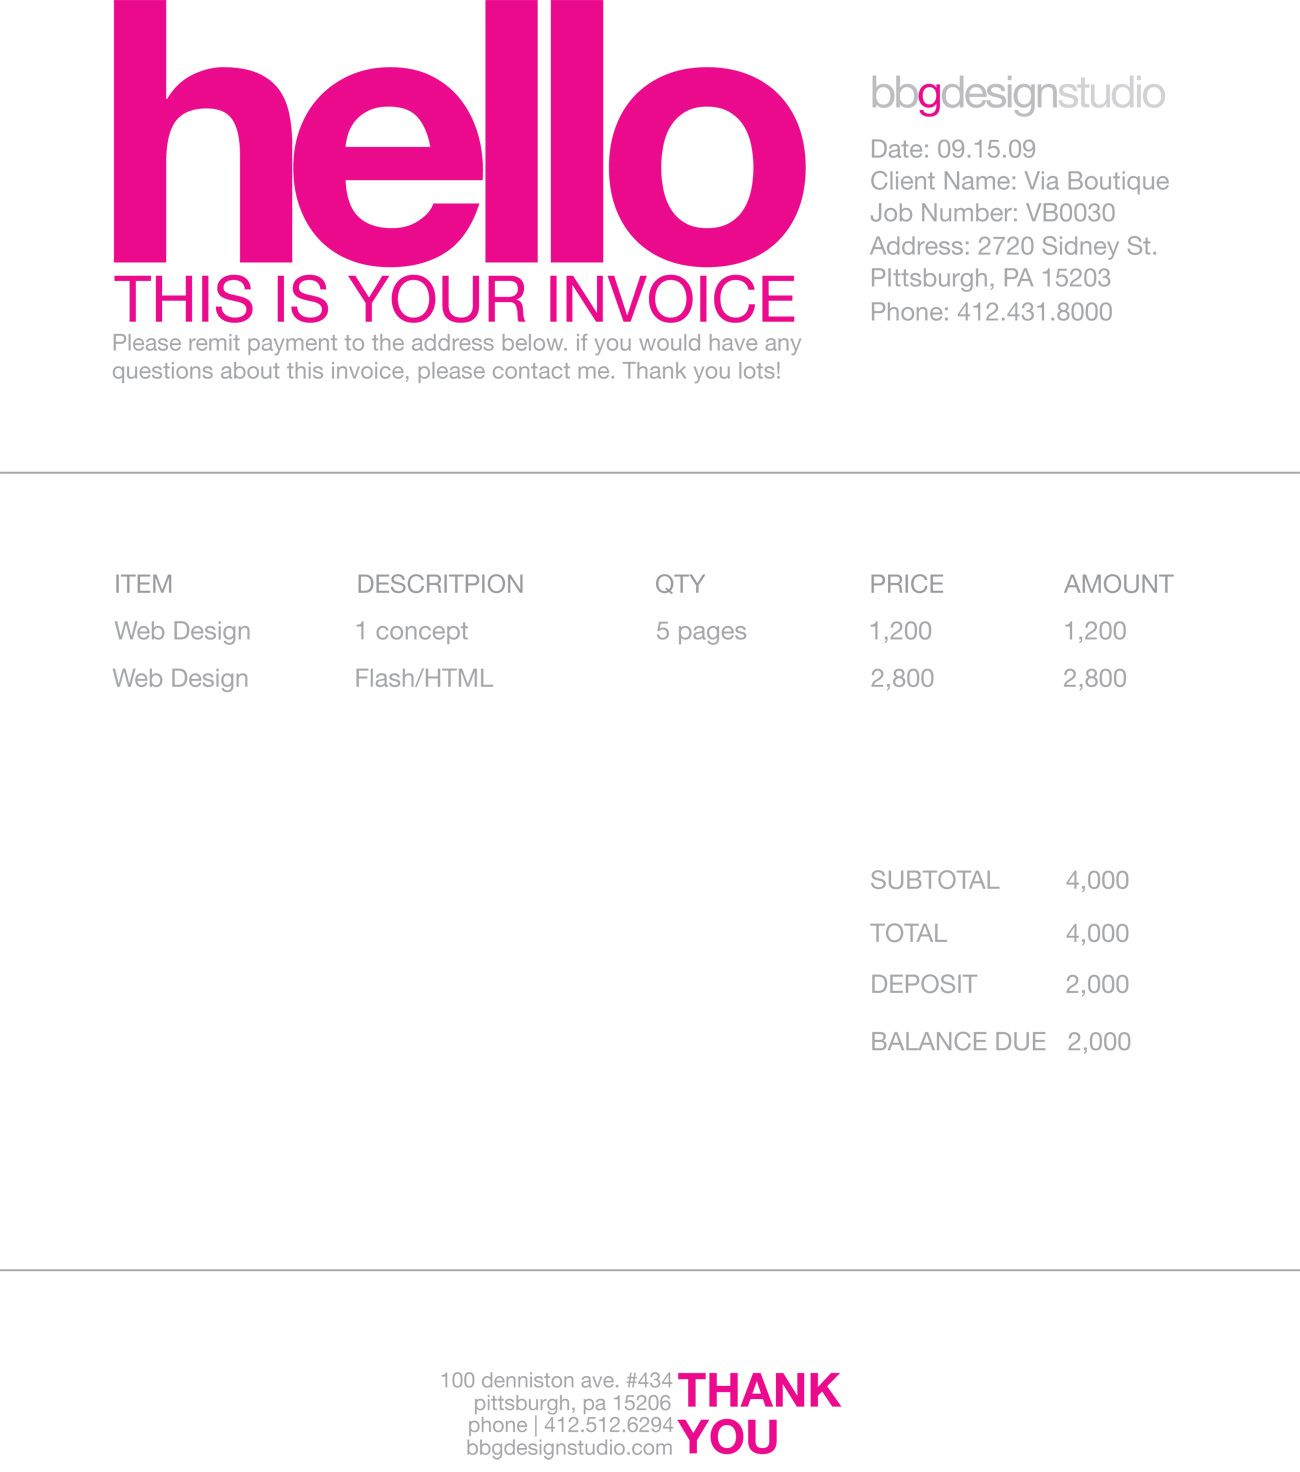 Modaoxus  Unique  Images About Invoice Design On Pinterest With Licious Project Invoice Template Besides Template Commercial Invoice Furthermore Blank Invoice Template Printable With Amazing Define Invoice Discounting Also Excise Invoice Format In Addition Rbs Invoice Finance And Australian Invoice As Well As Find Invoice Price Of New Car By Vin Additionally Bill Invoice Format In Word From Pinterestcom With Modaoxus  Licious  Images About Invoice Design On Pinterest With Amazing Project Invoice Template Besides Template Commercial Invoice Furthermore Blank Invoice Template Printable And Unique Define Invoice Discounting Also Excise Invoice Format In Addition Rbs Invoice Finance From Pinterestcom